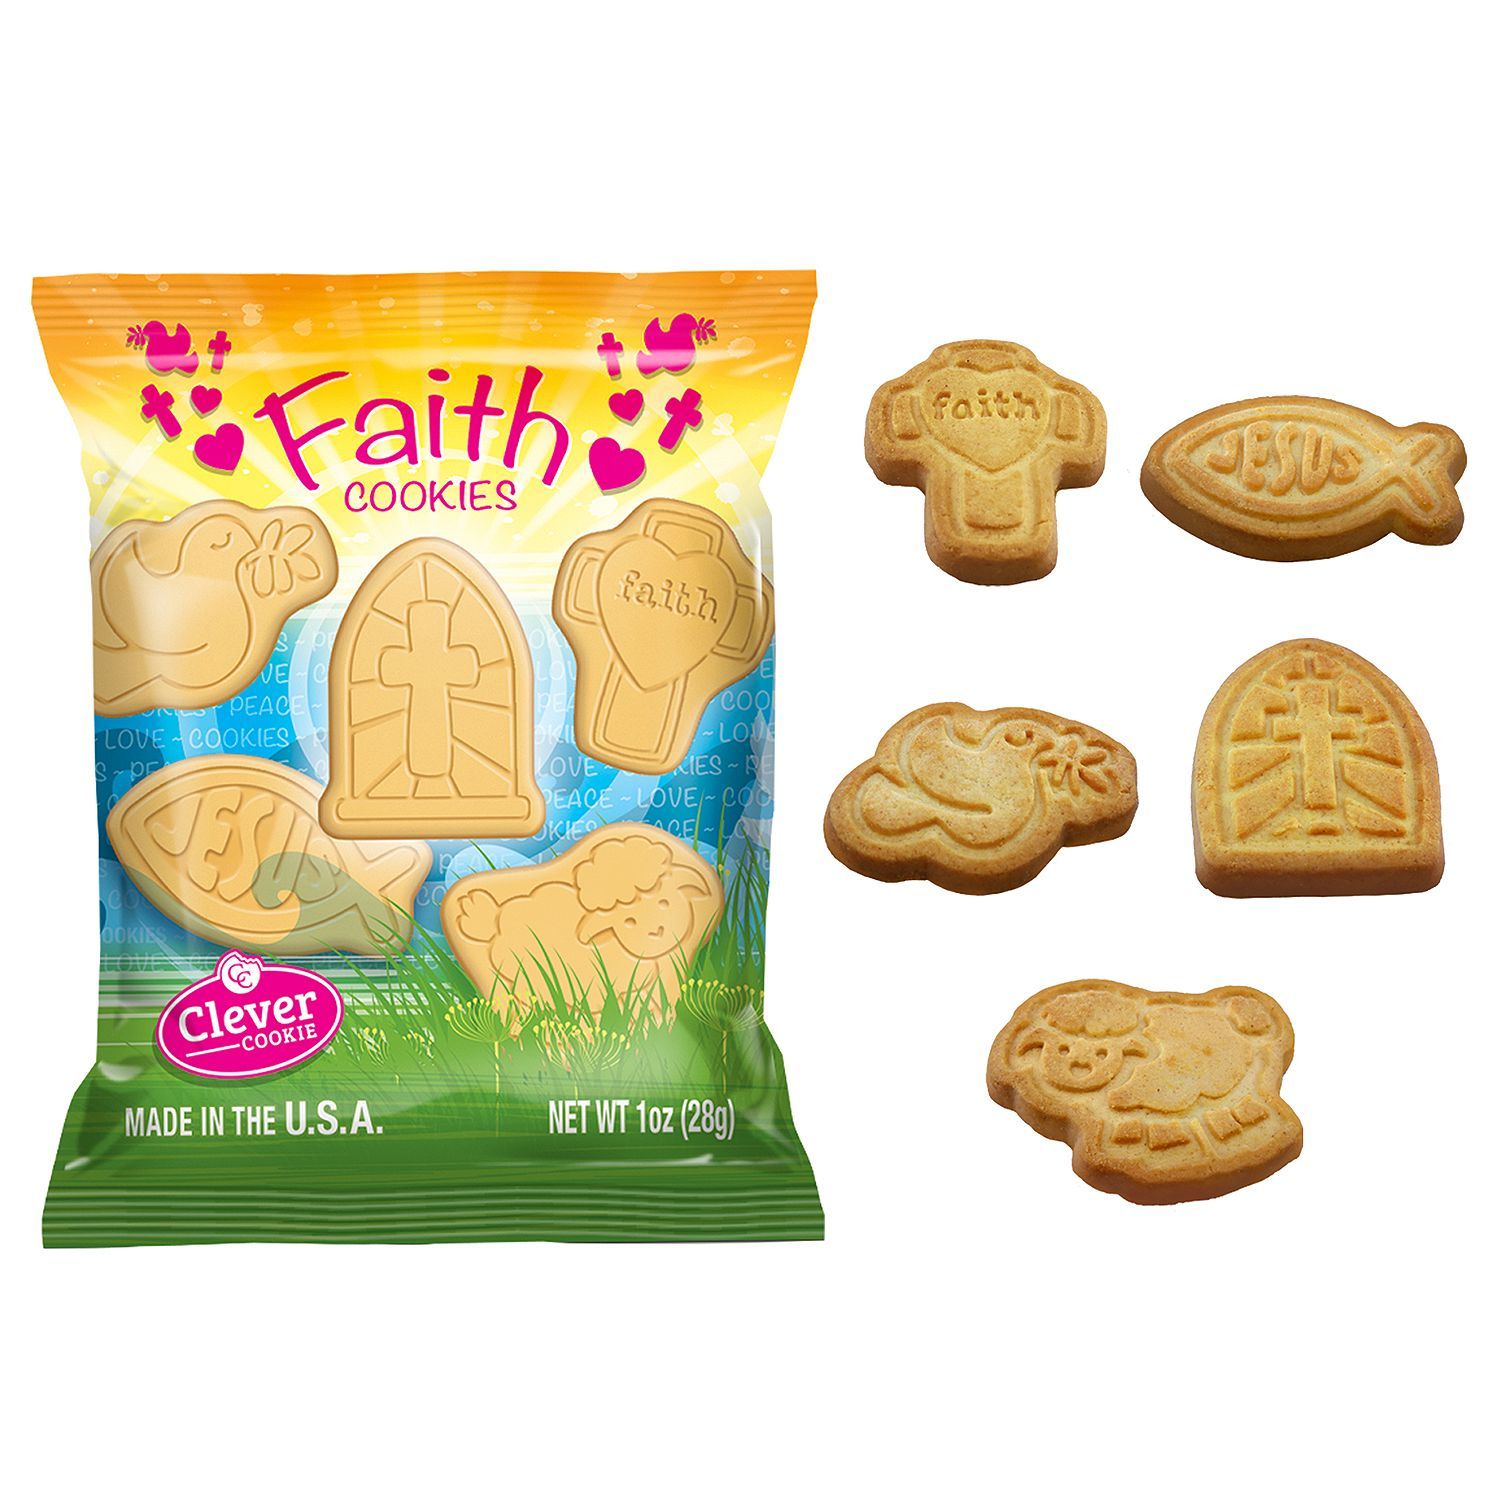 Faith Shortbread Cookie Snack Packs (1 oz., 85 ct.) by